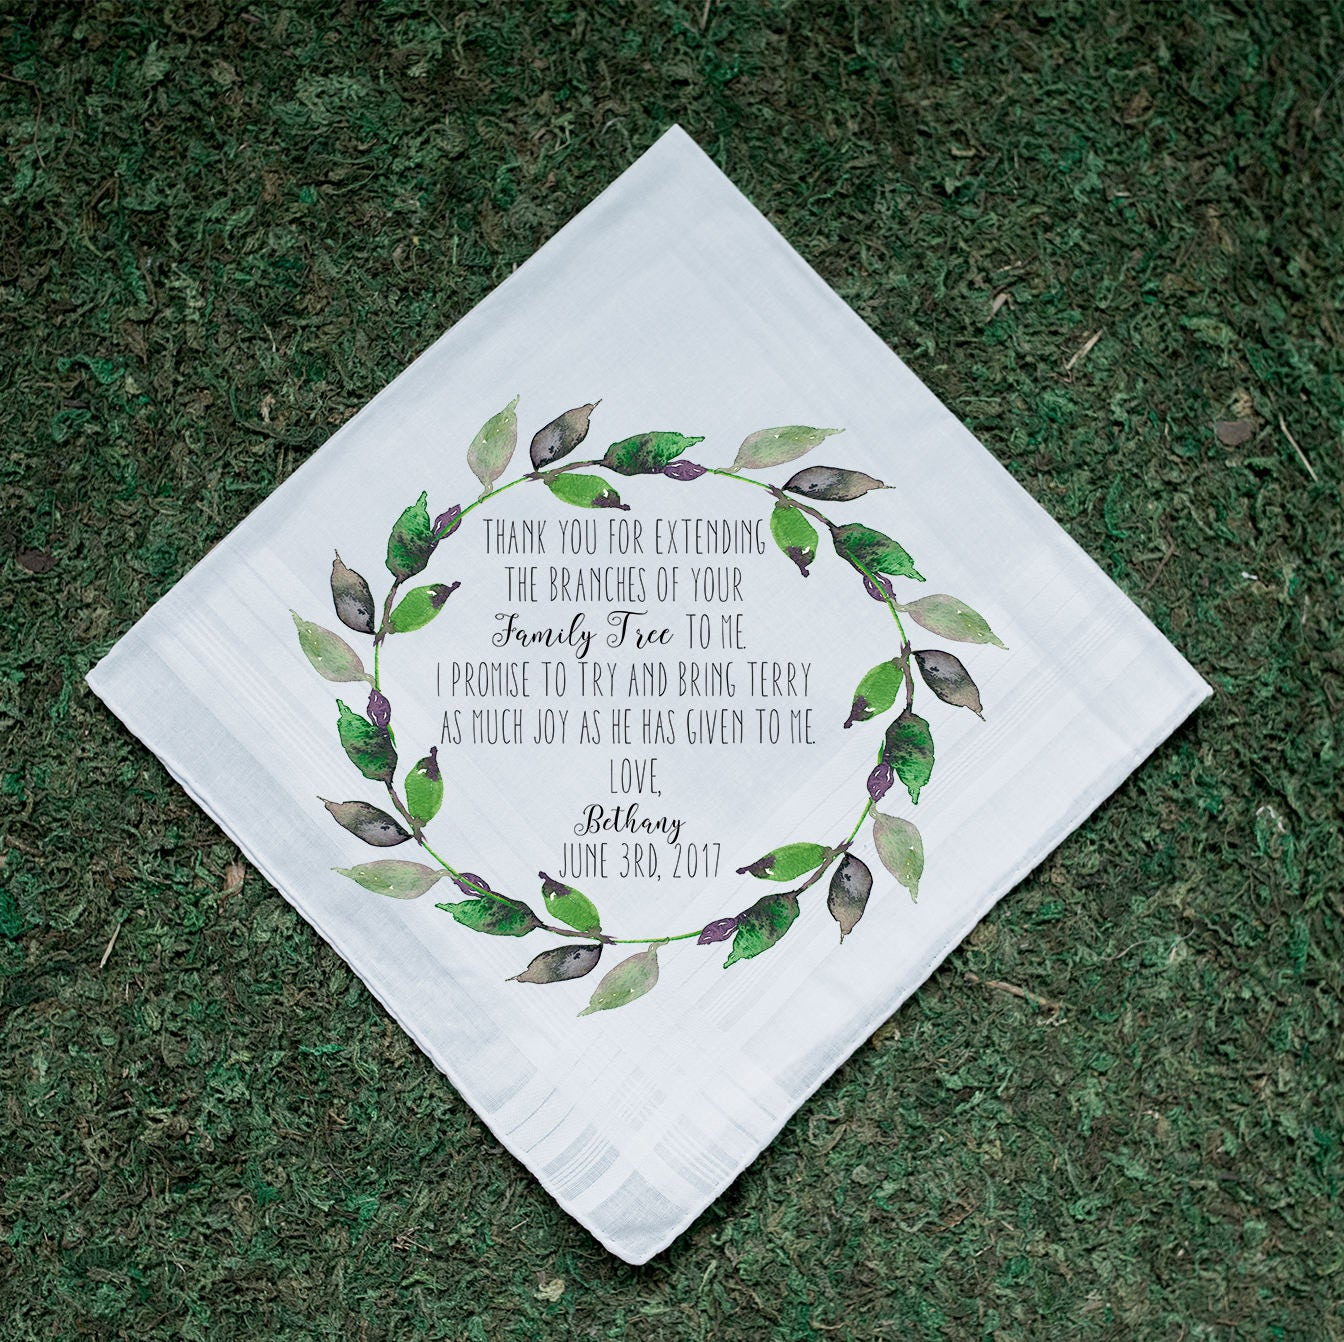 Wedding Handkerchiefs For The Family: Wedding Handkerchief Family Tree Mother In Law Father In